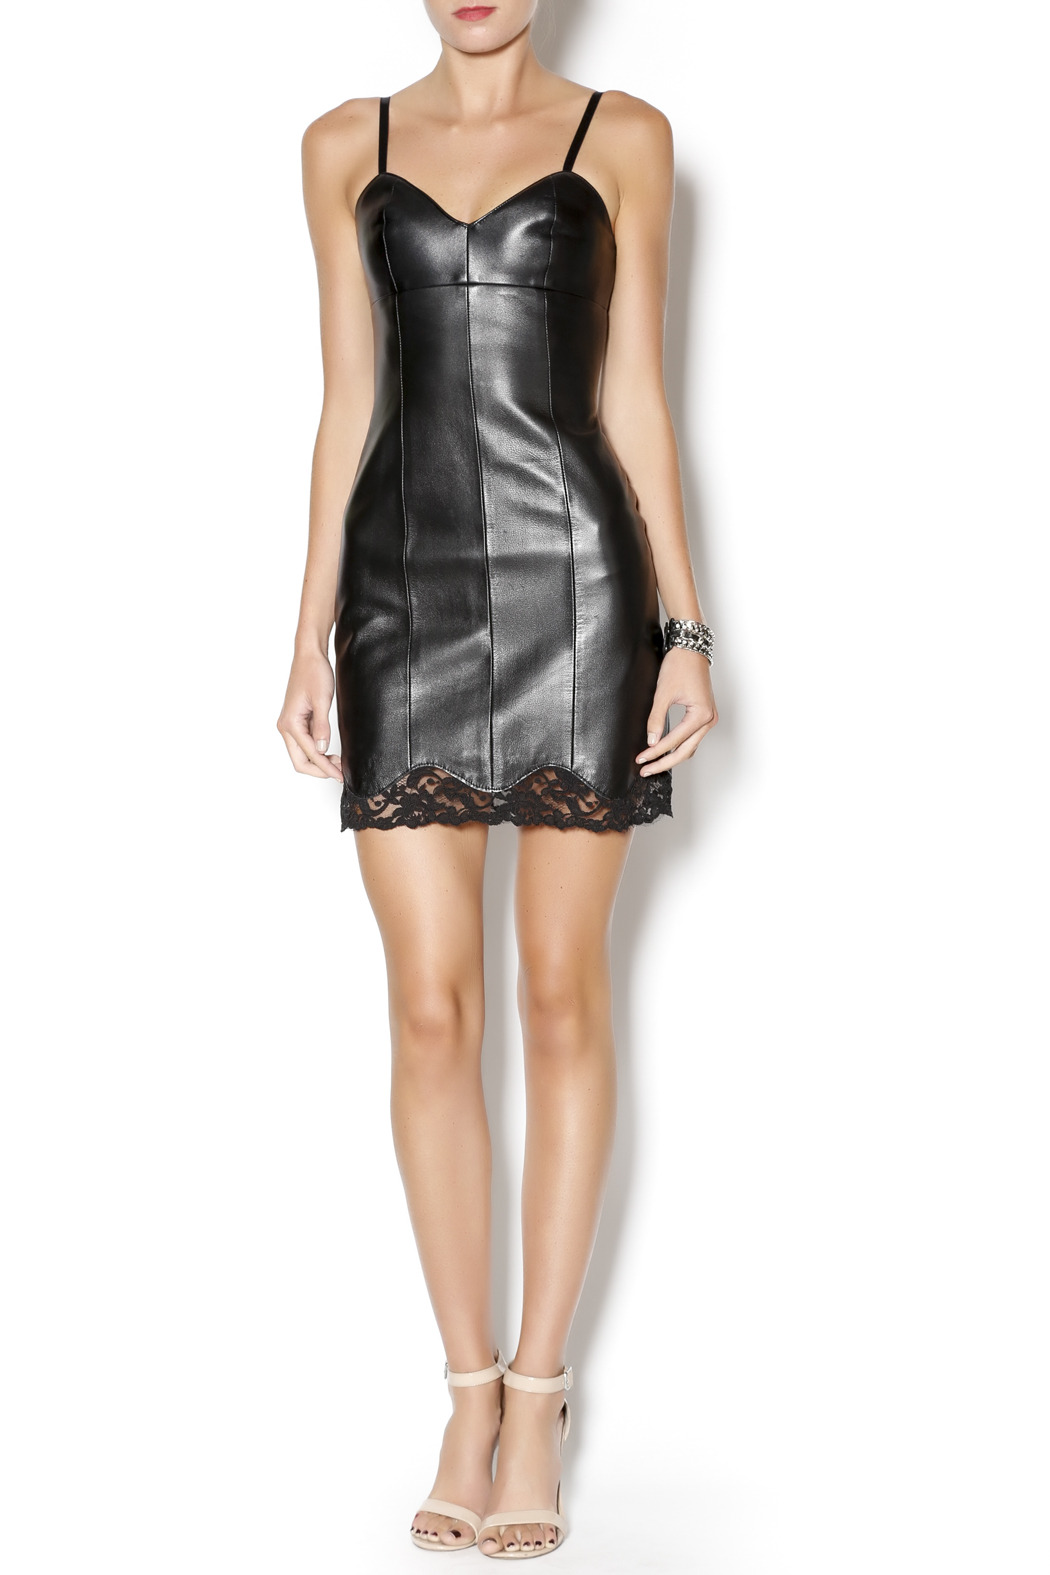 West Coast Leather Sweetheart Lace Leather Dress - Front Full Image